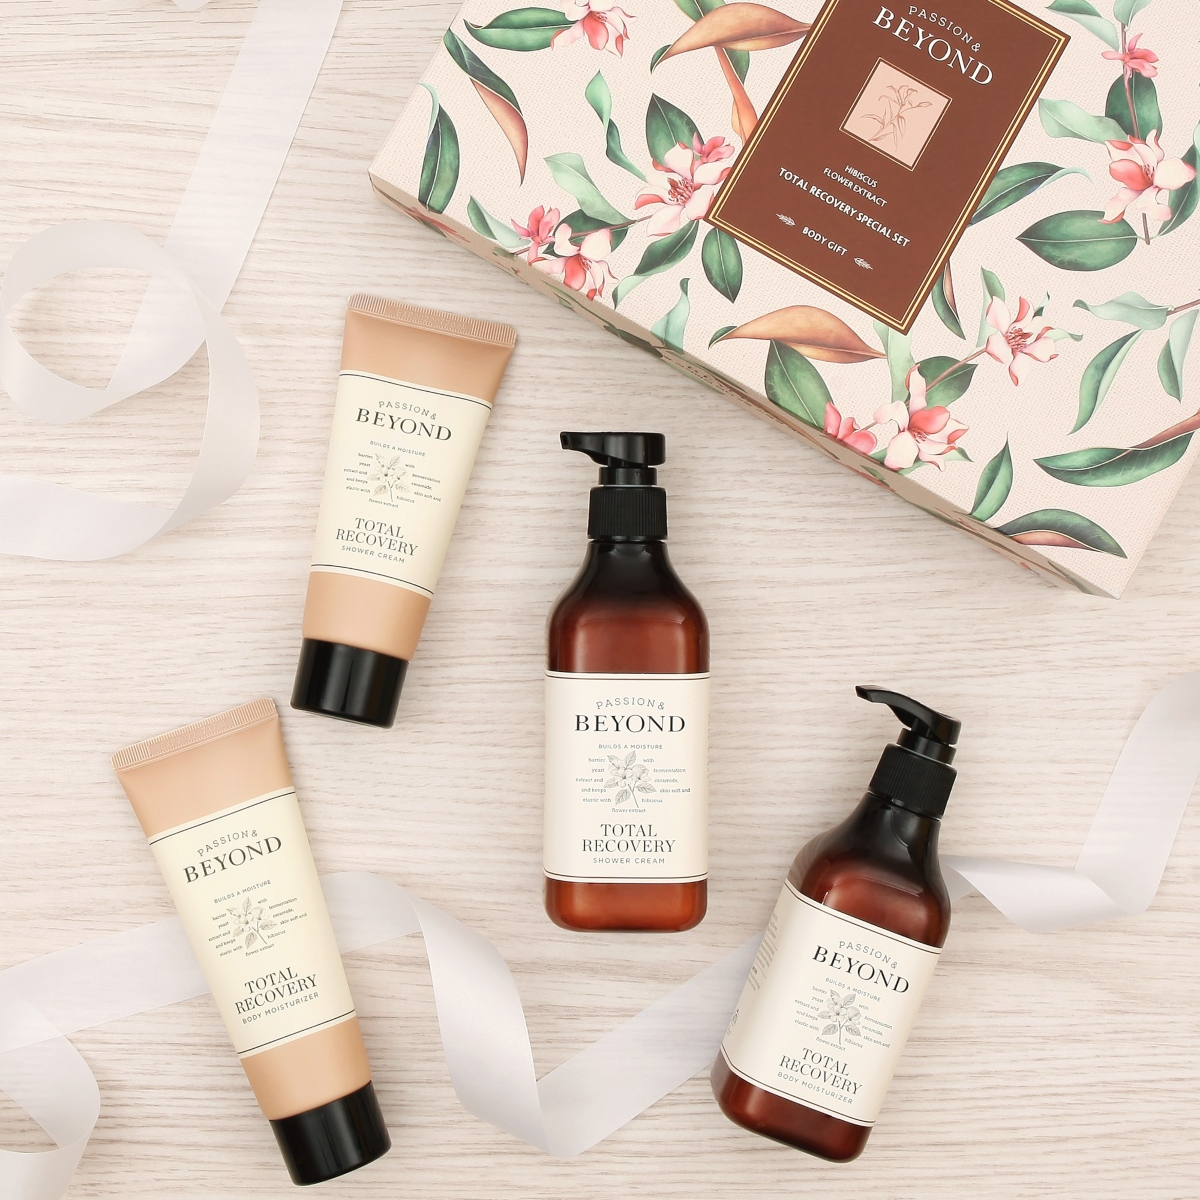 The Face Shop Total Recovery